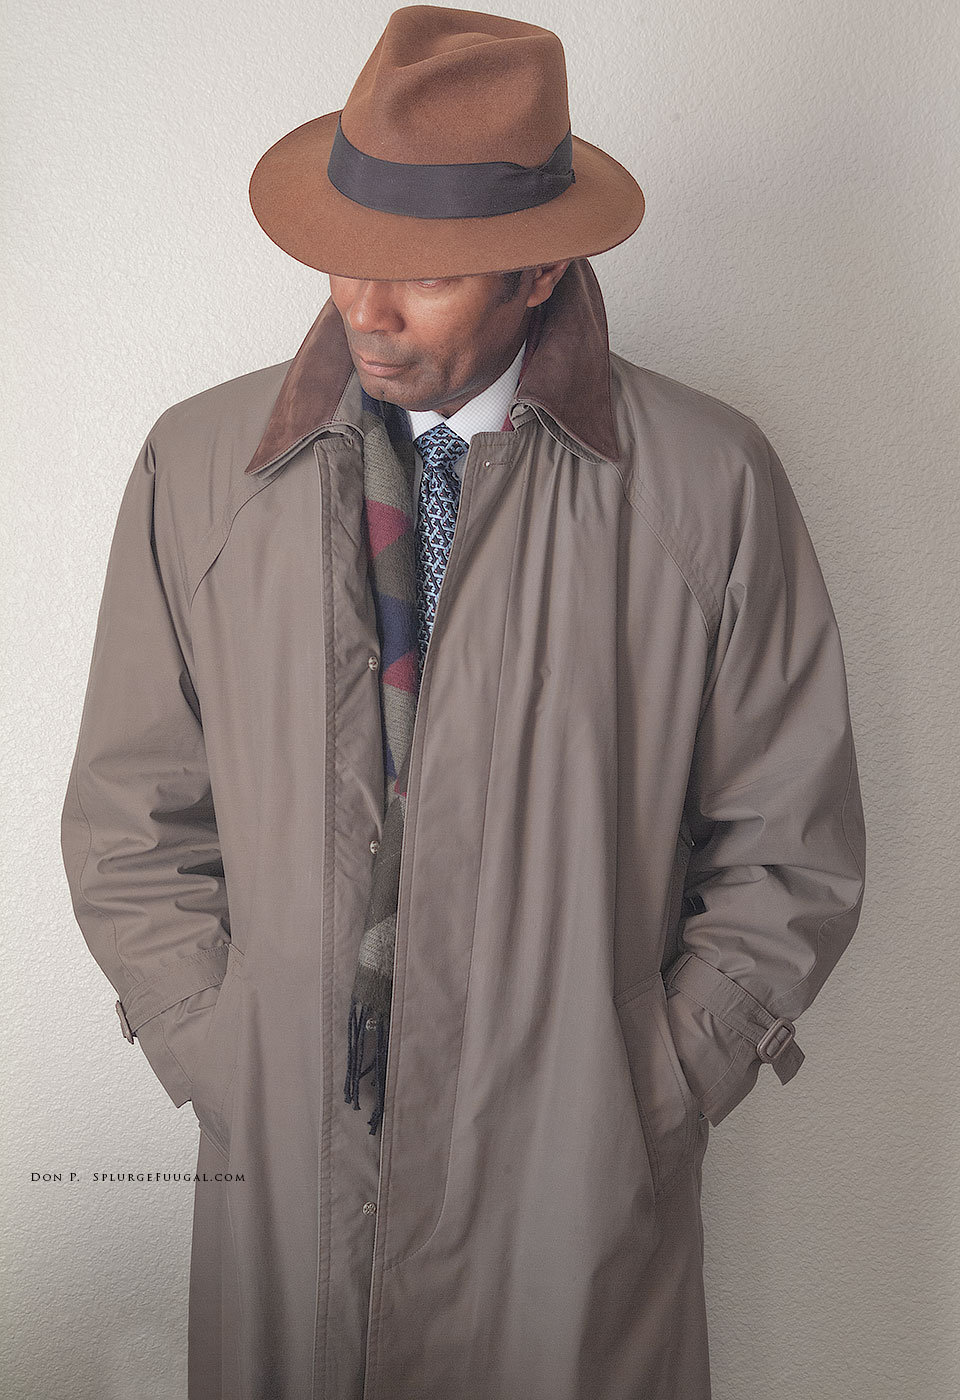 thrift shop overcoats -full-length-men's overcoat